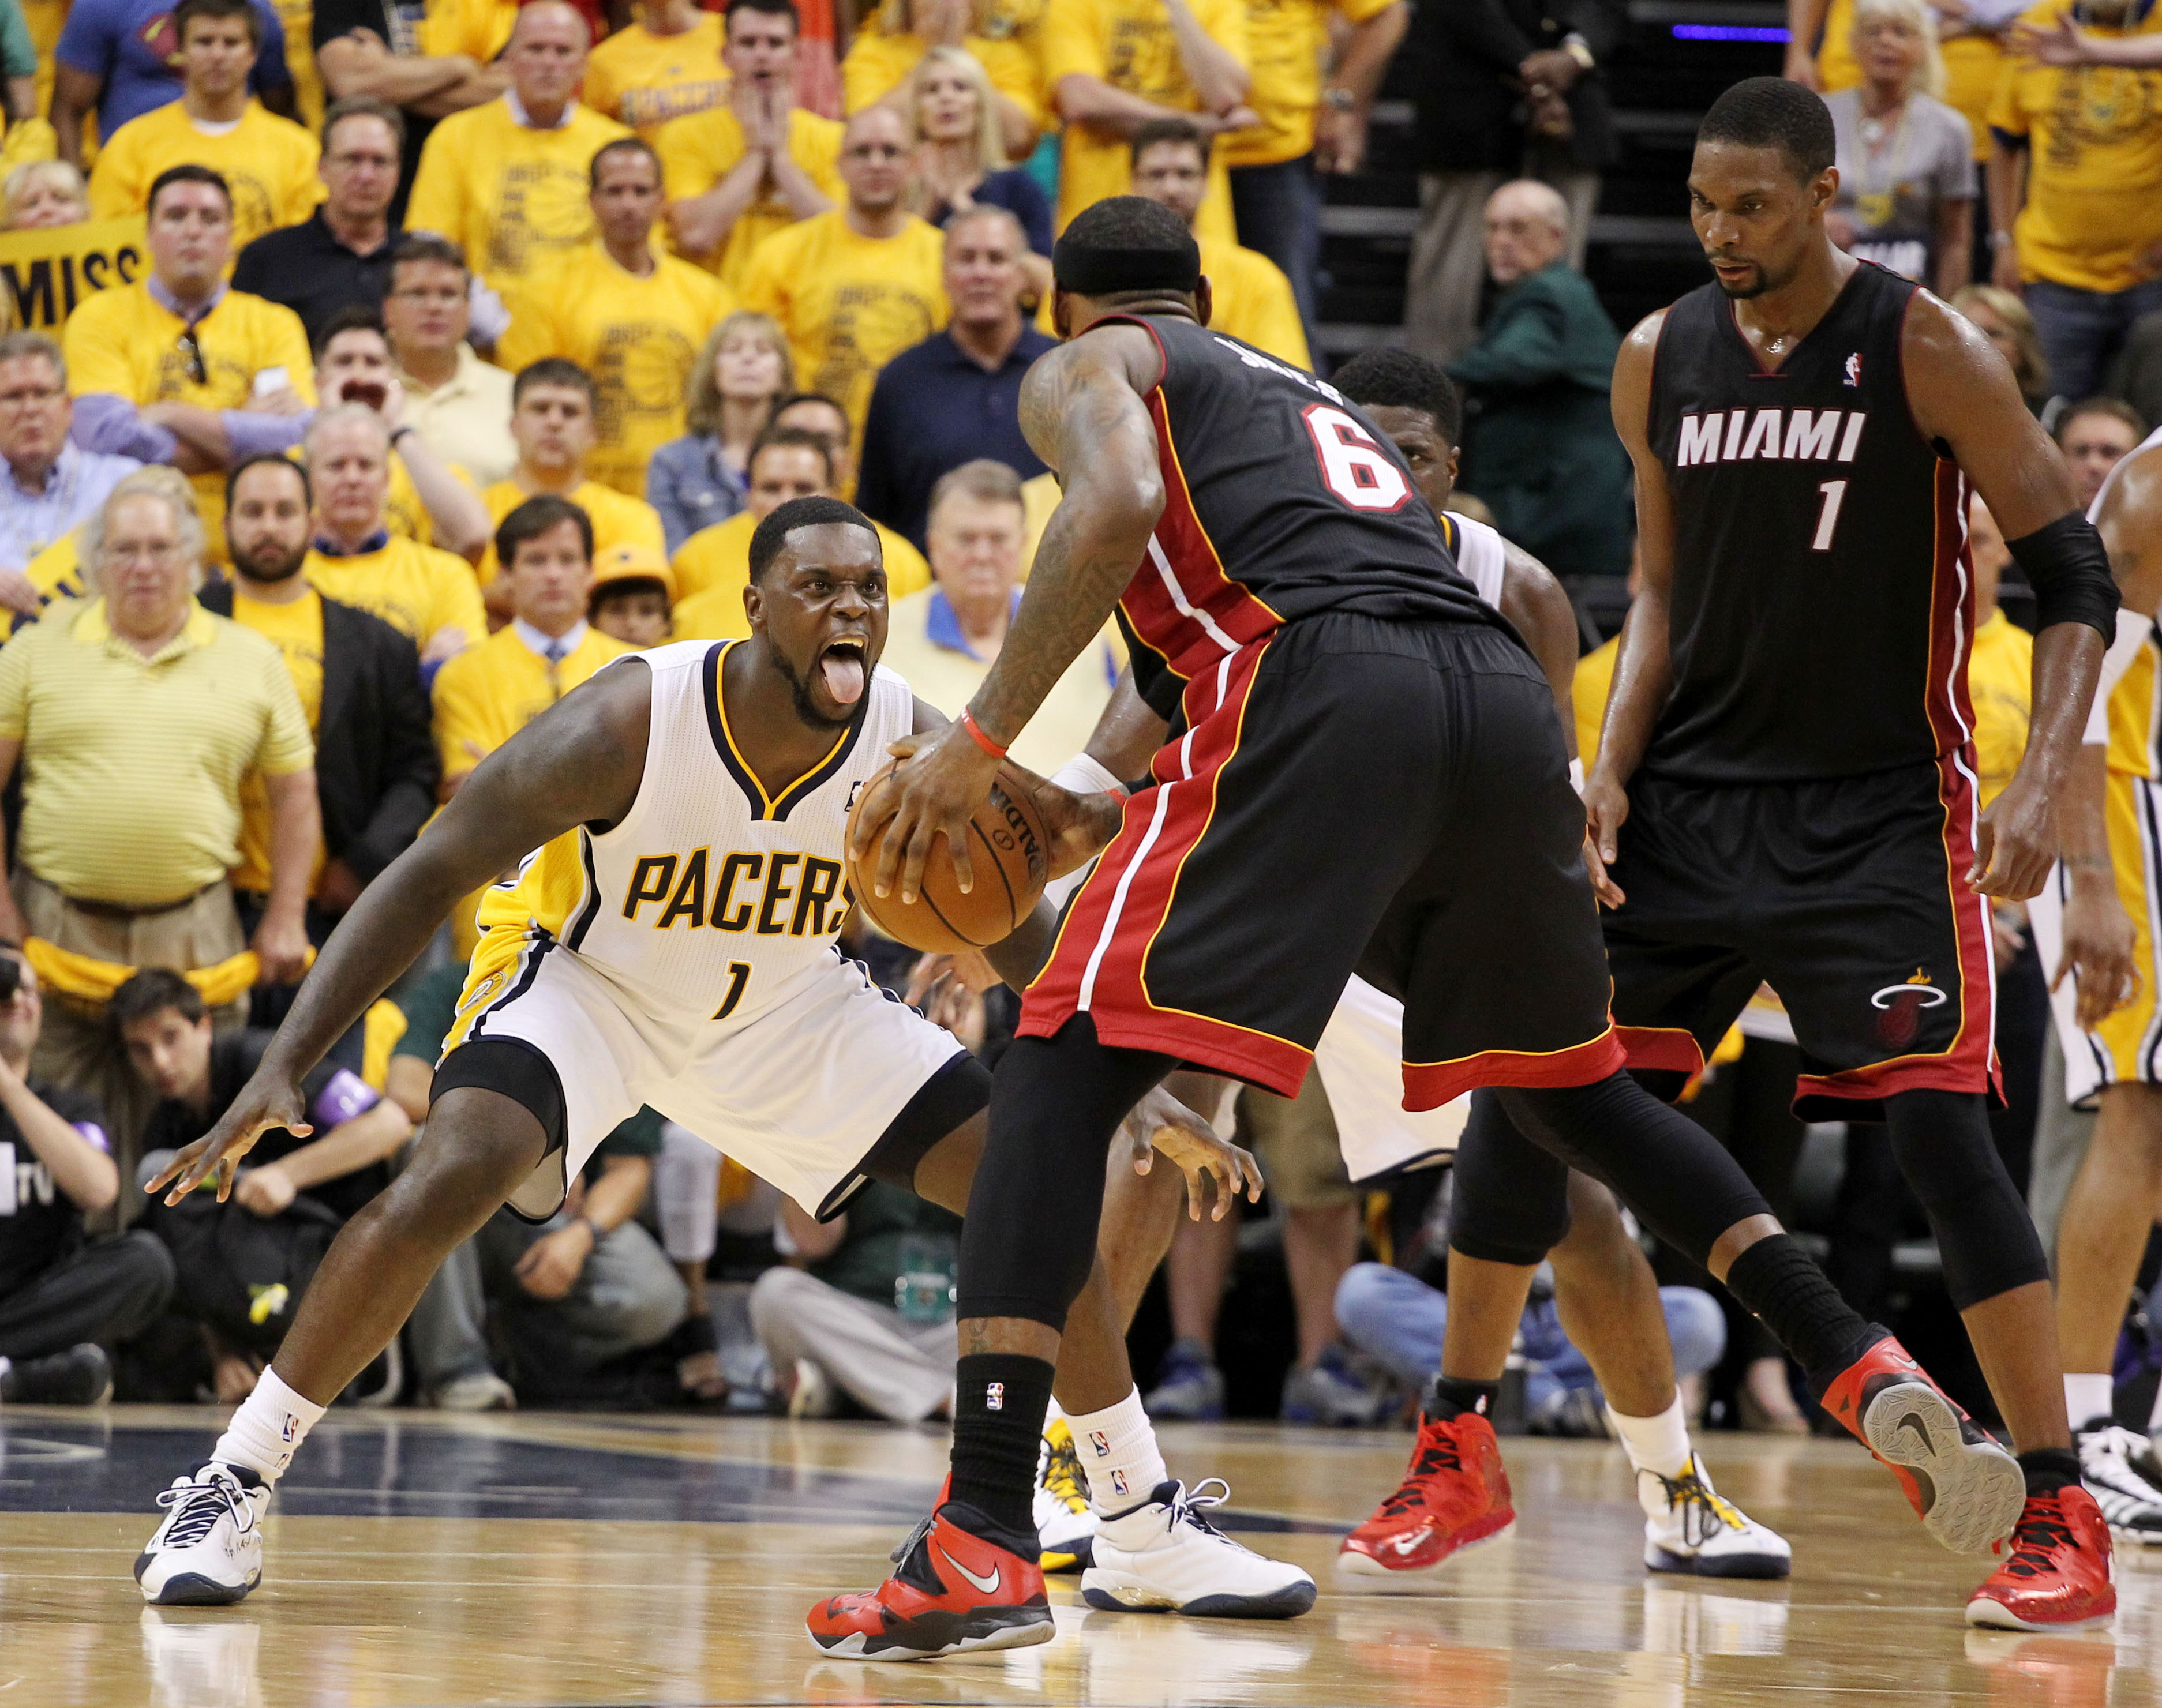 7930640-nba-playoffs-miami-heat-at-indiana-pacers